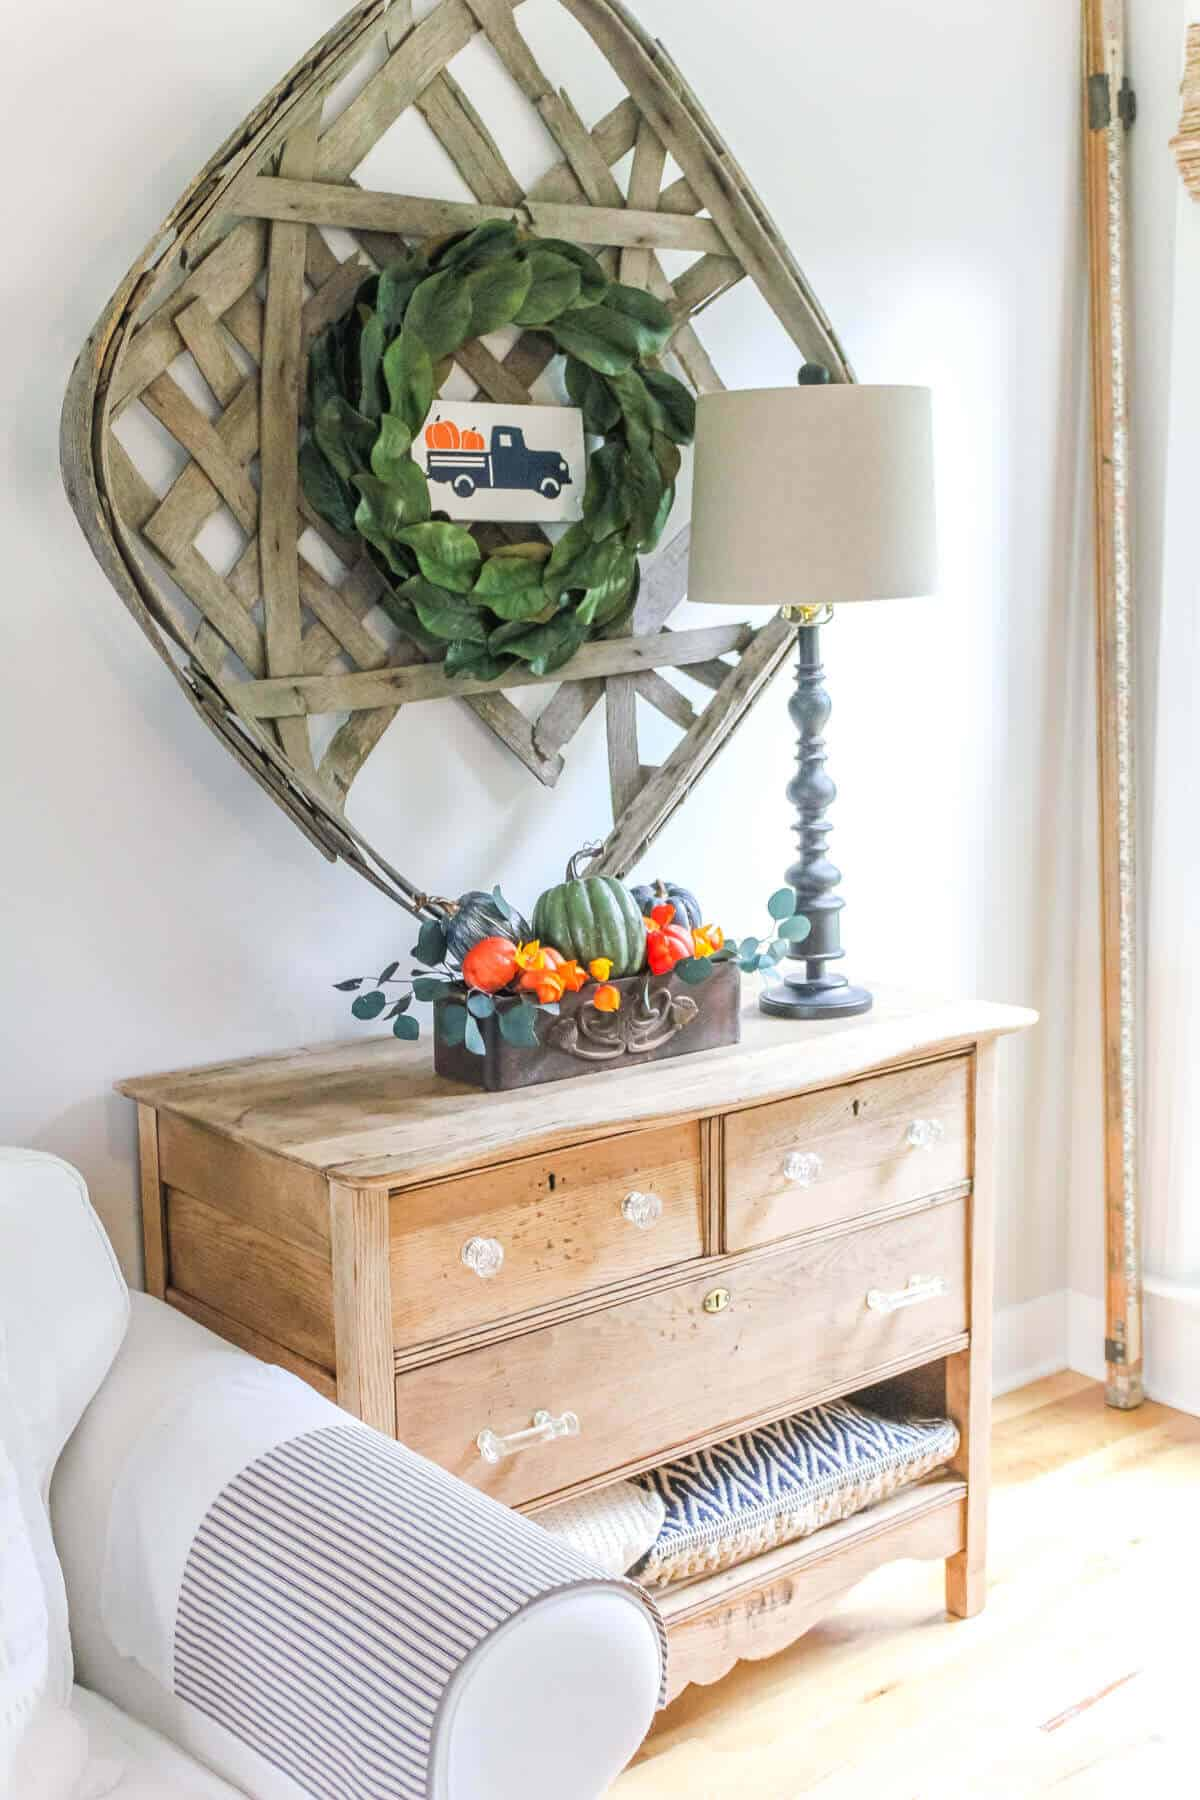 Magnolia leaf wreath with a painted wooden sign showing a vintage truck filled with pumpkins hanging on a tobacco basket